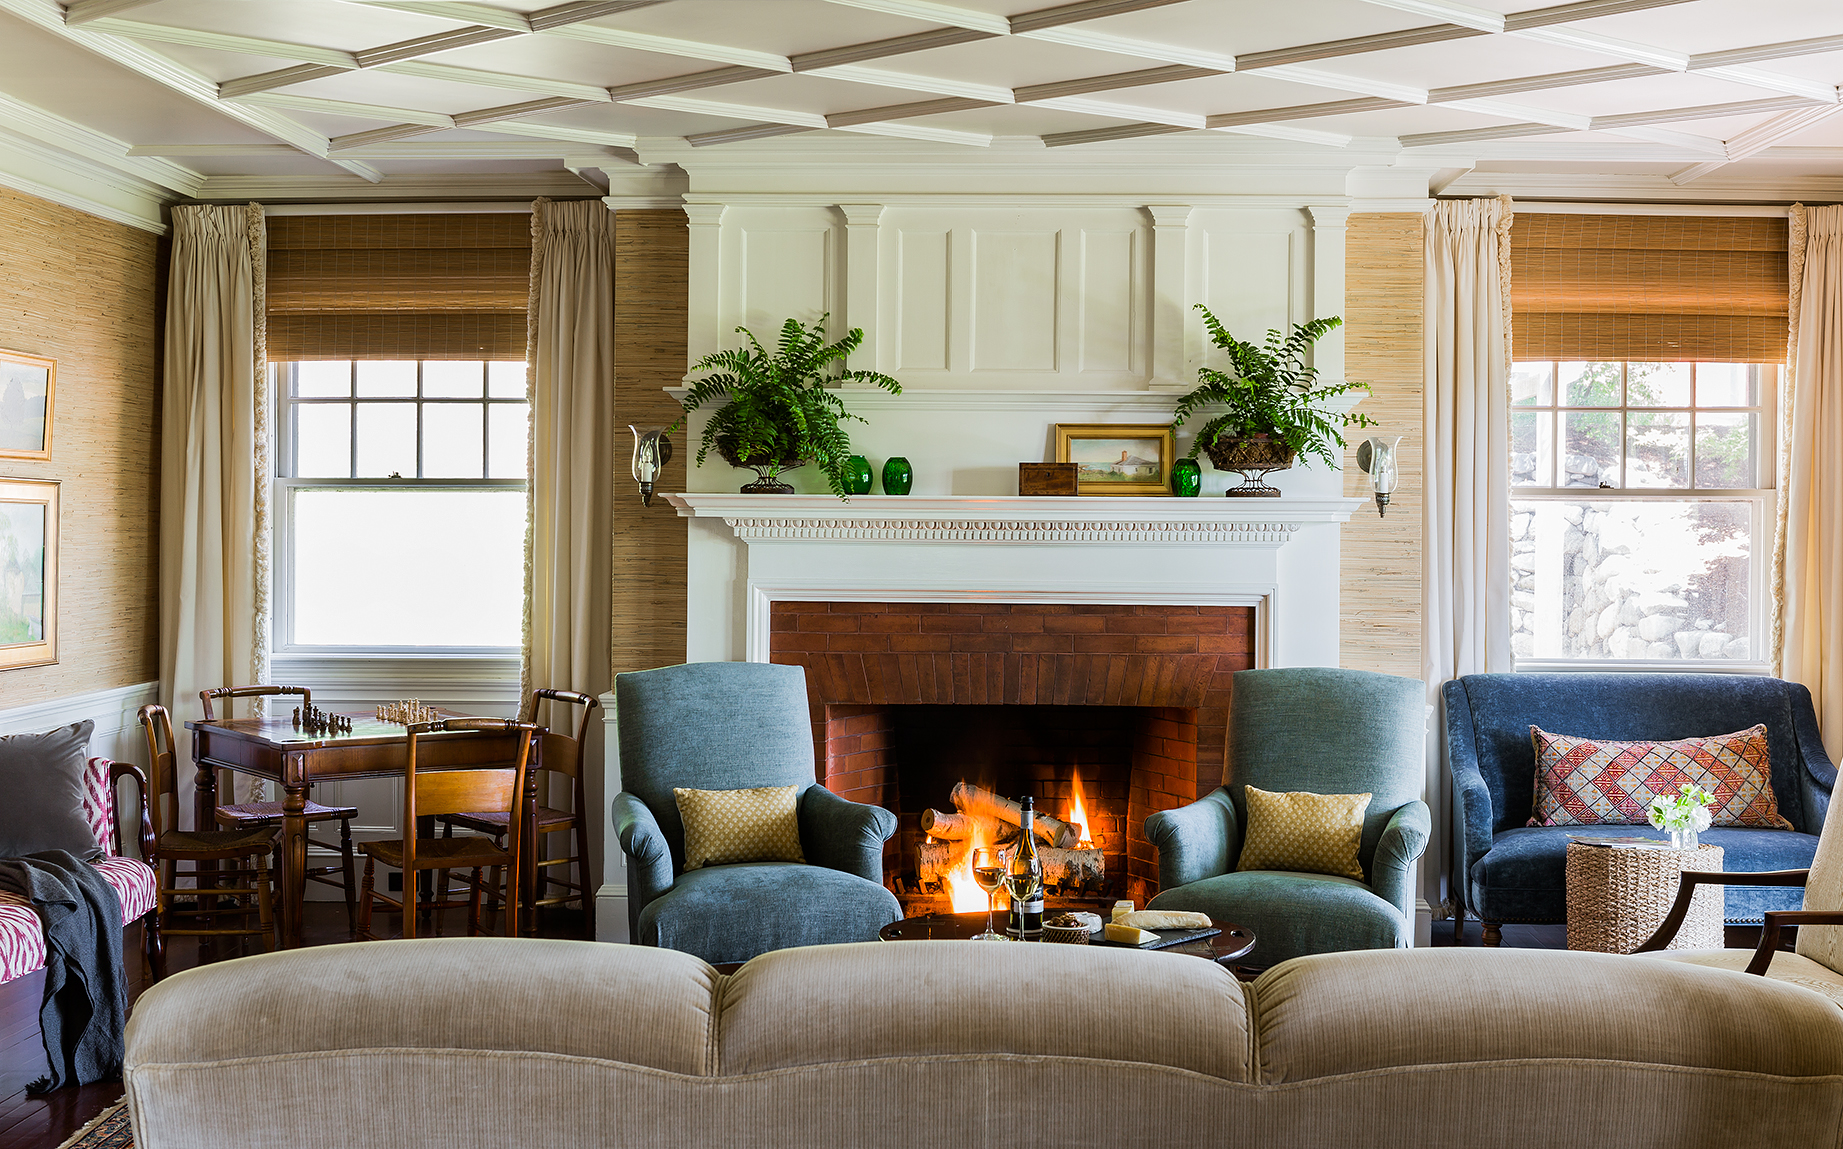 Fireplace - photo by Michael Lee